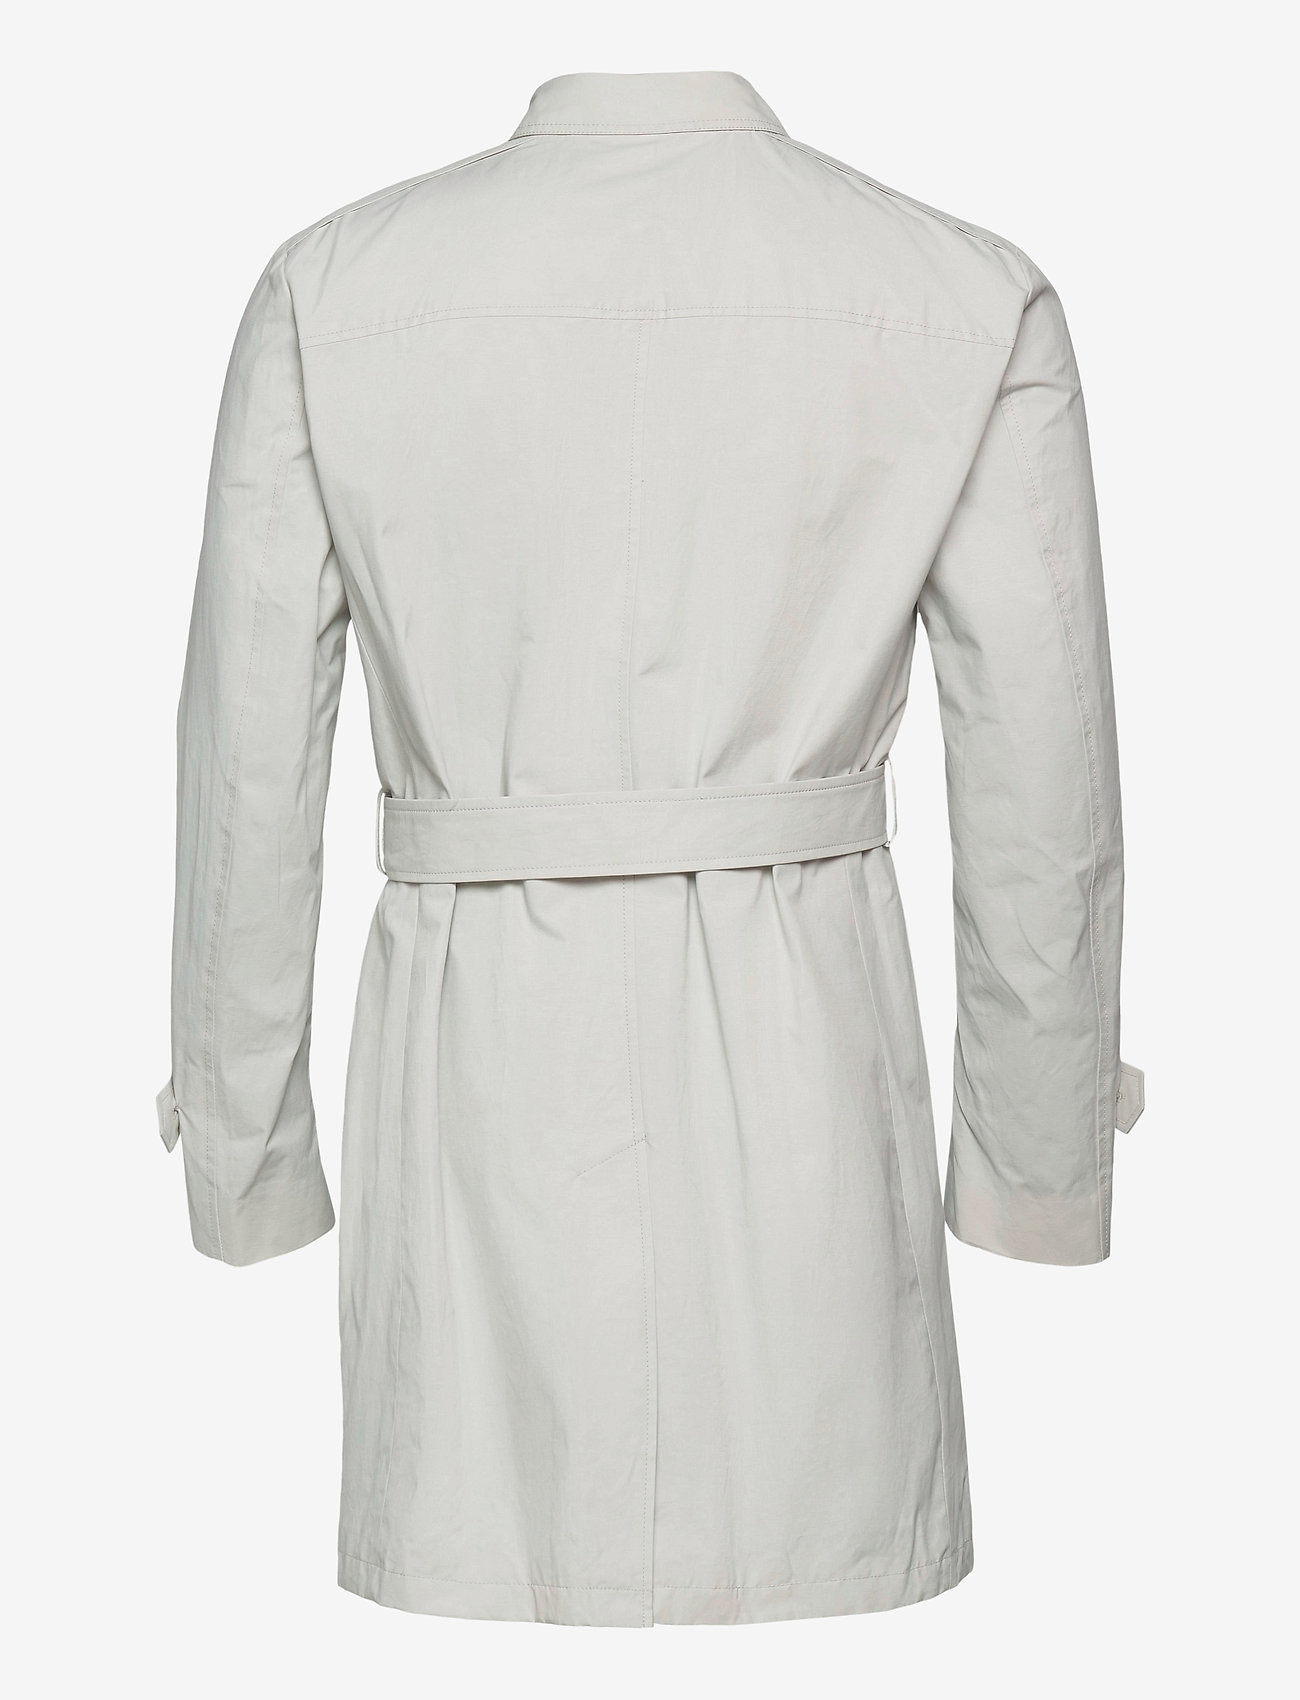 SAND - Techno Cotton - Single Trench - trenchcoats - off white - 1